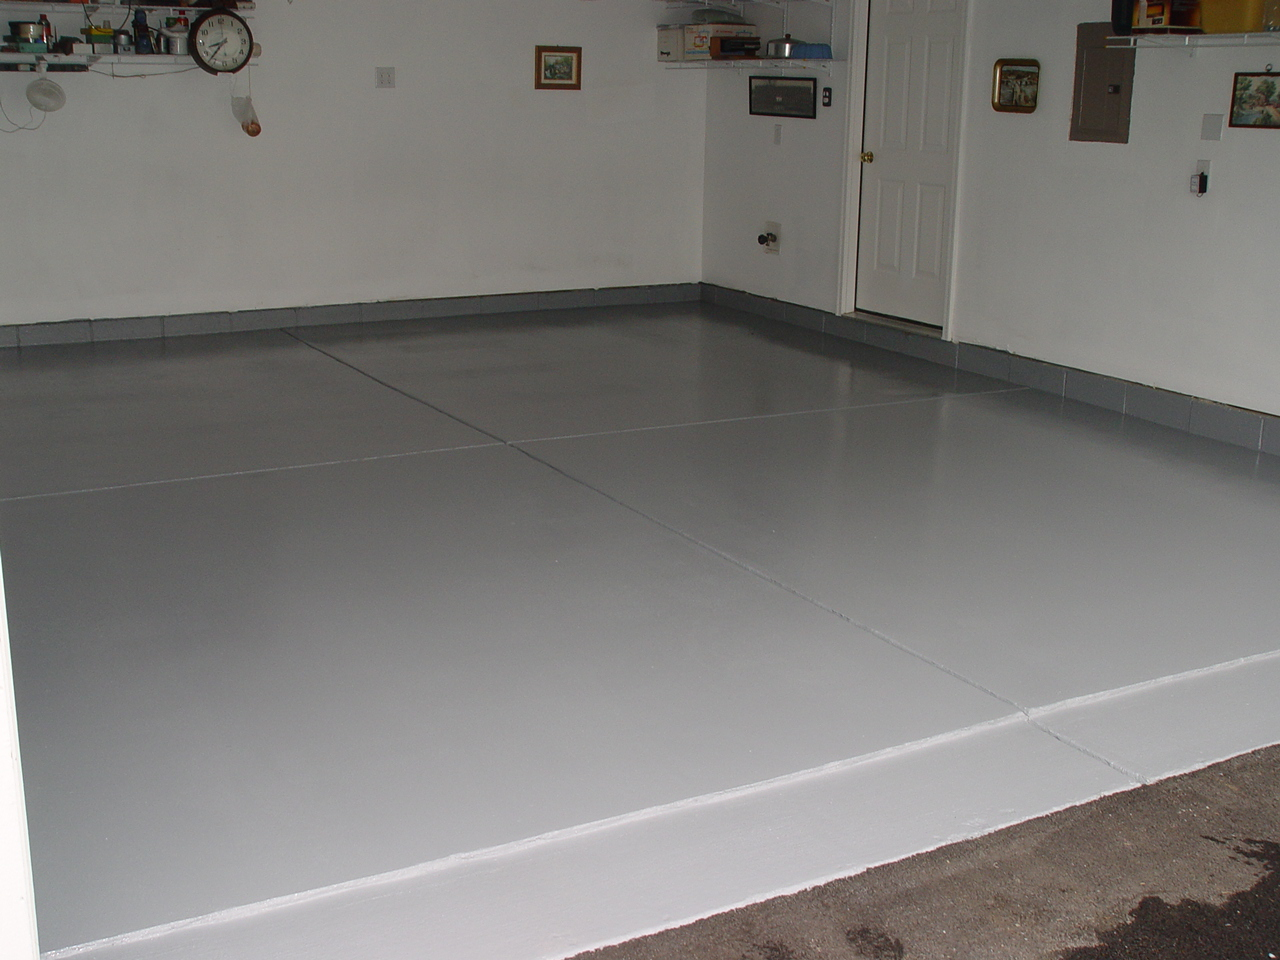 Paint guy inc 614 837 8477 for Garge floor